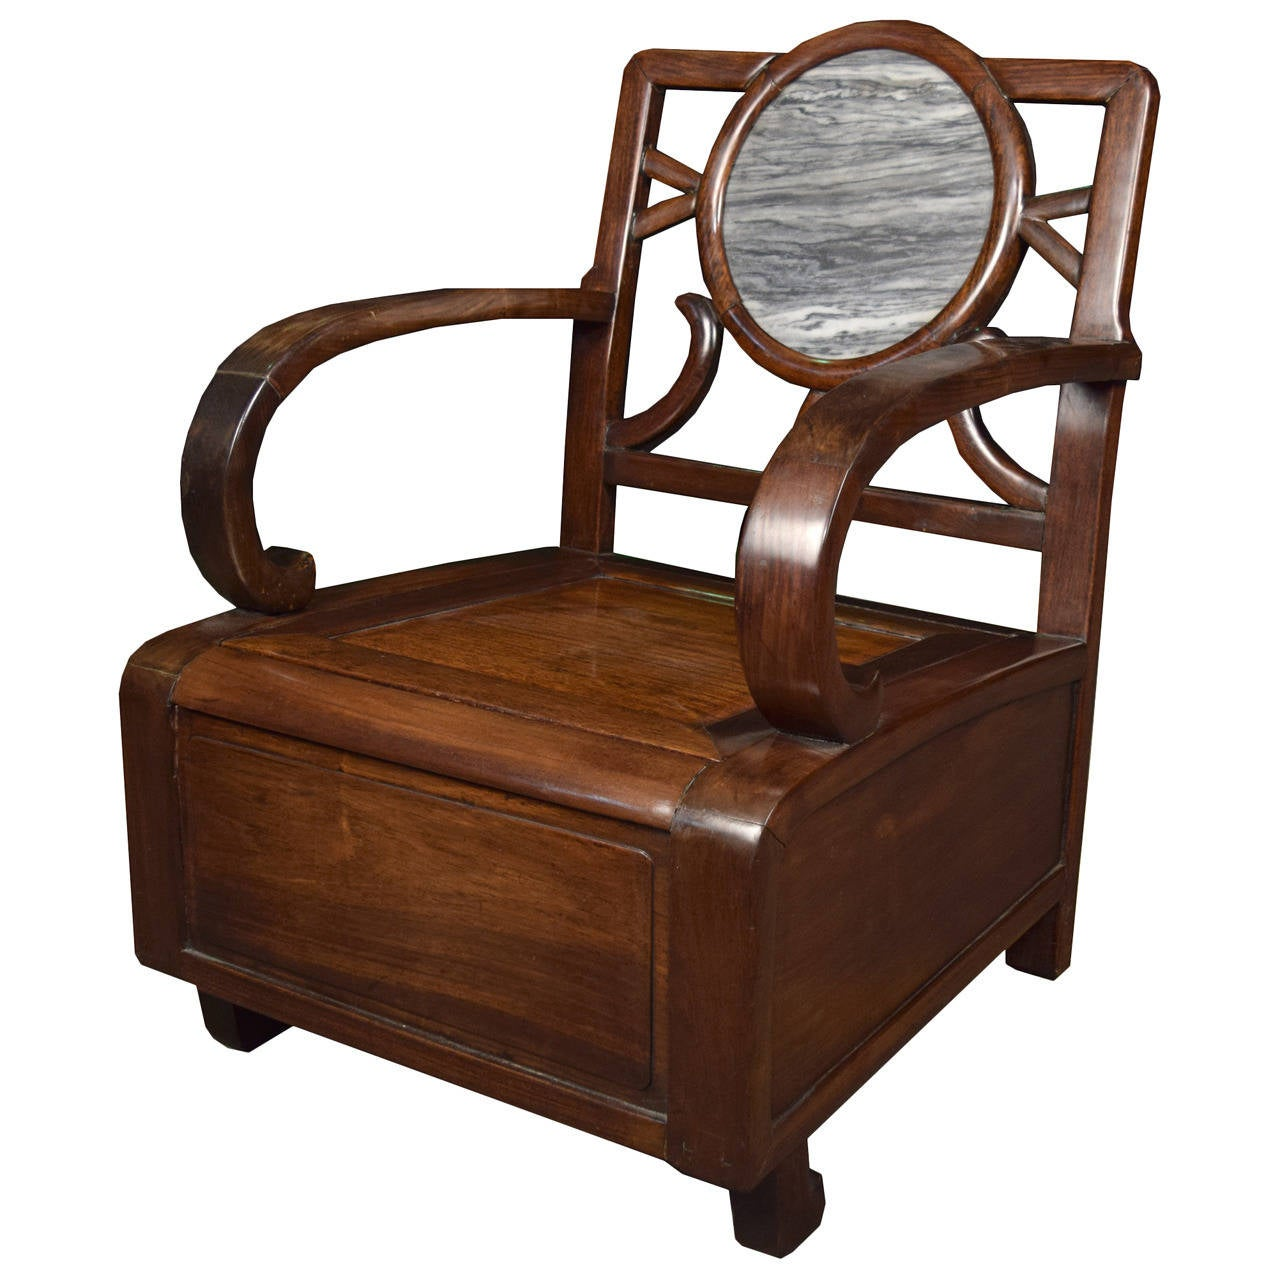 Chinese Deco Meditation Chair With Stone Medallion 1